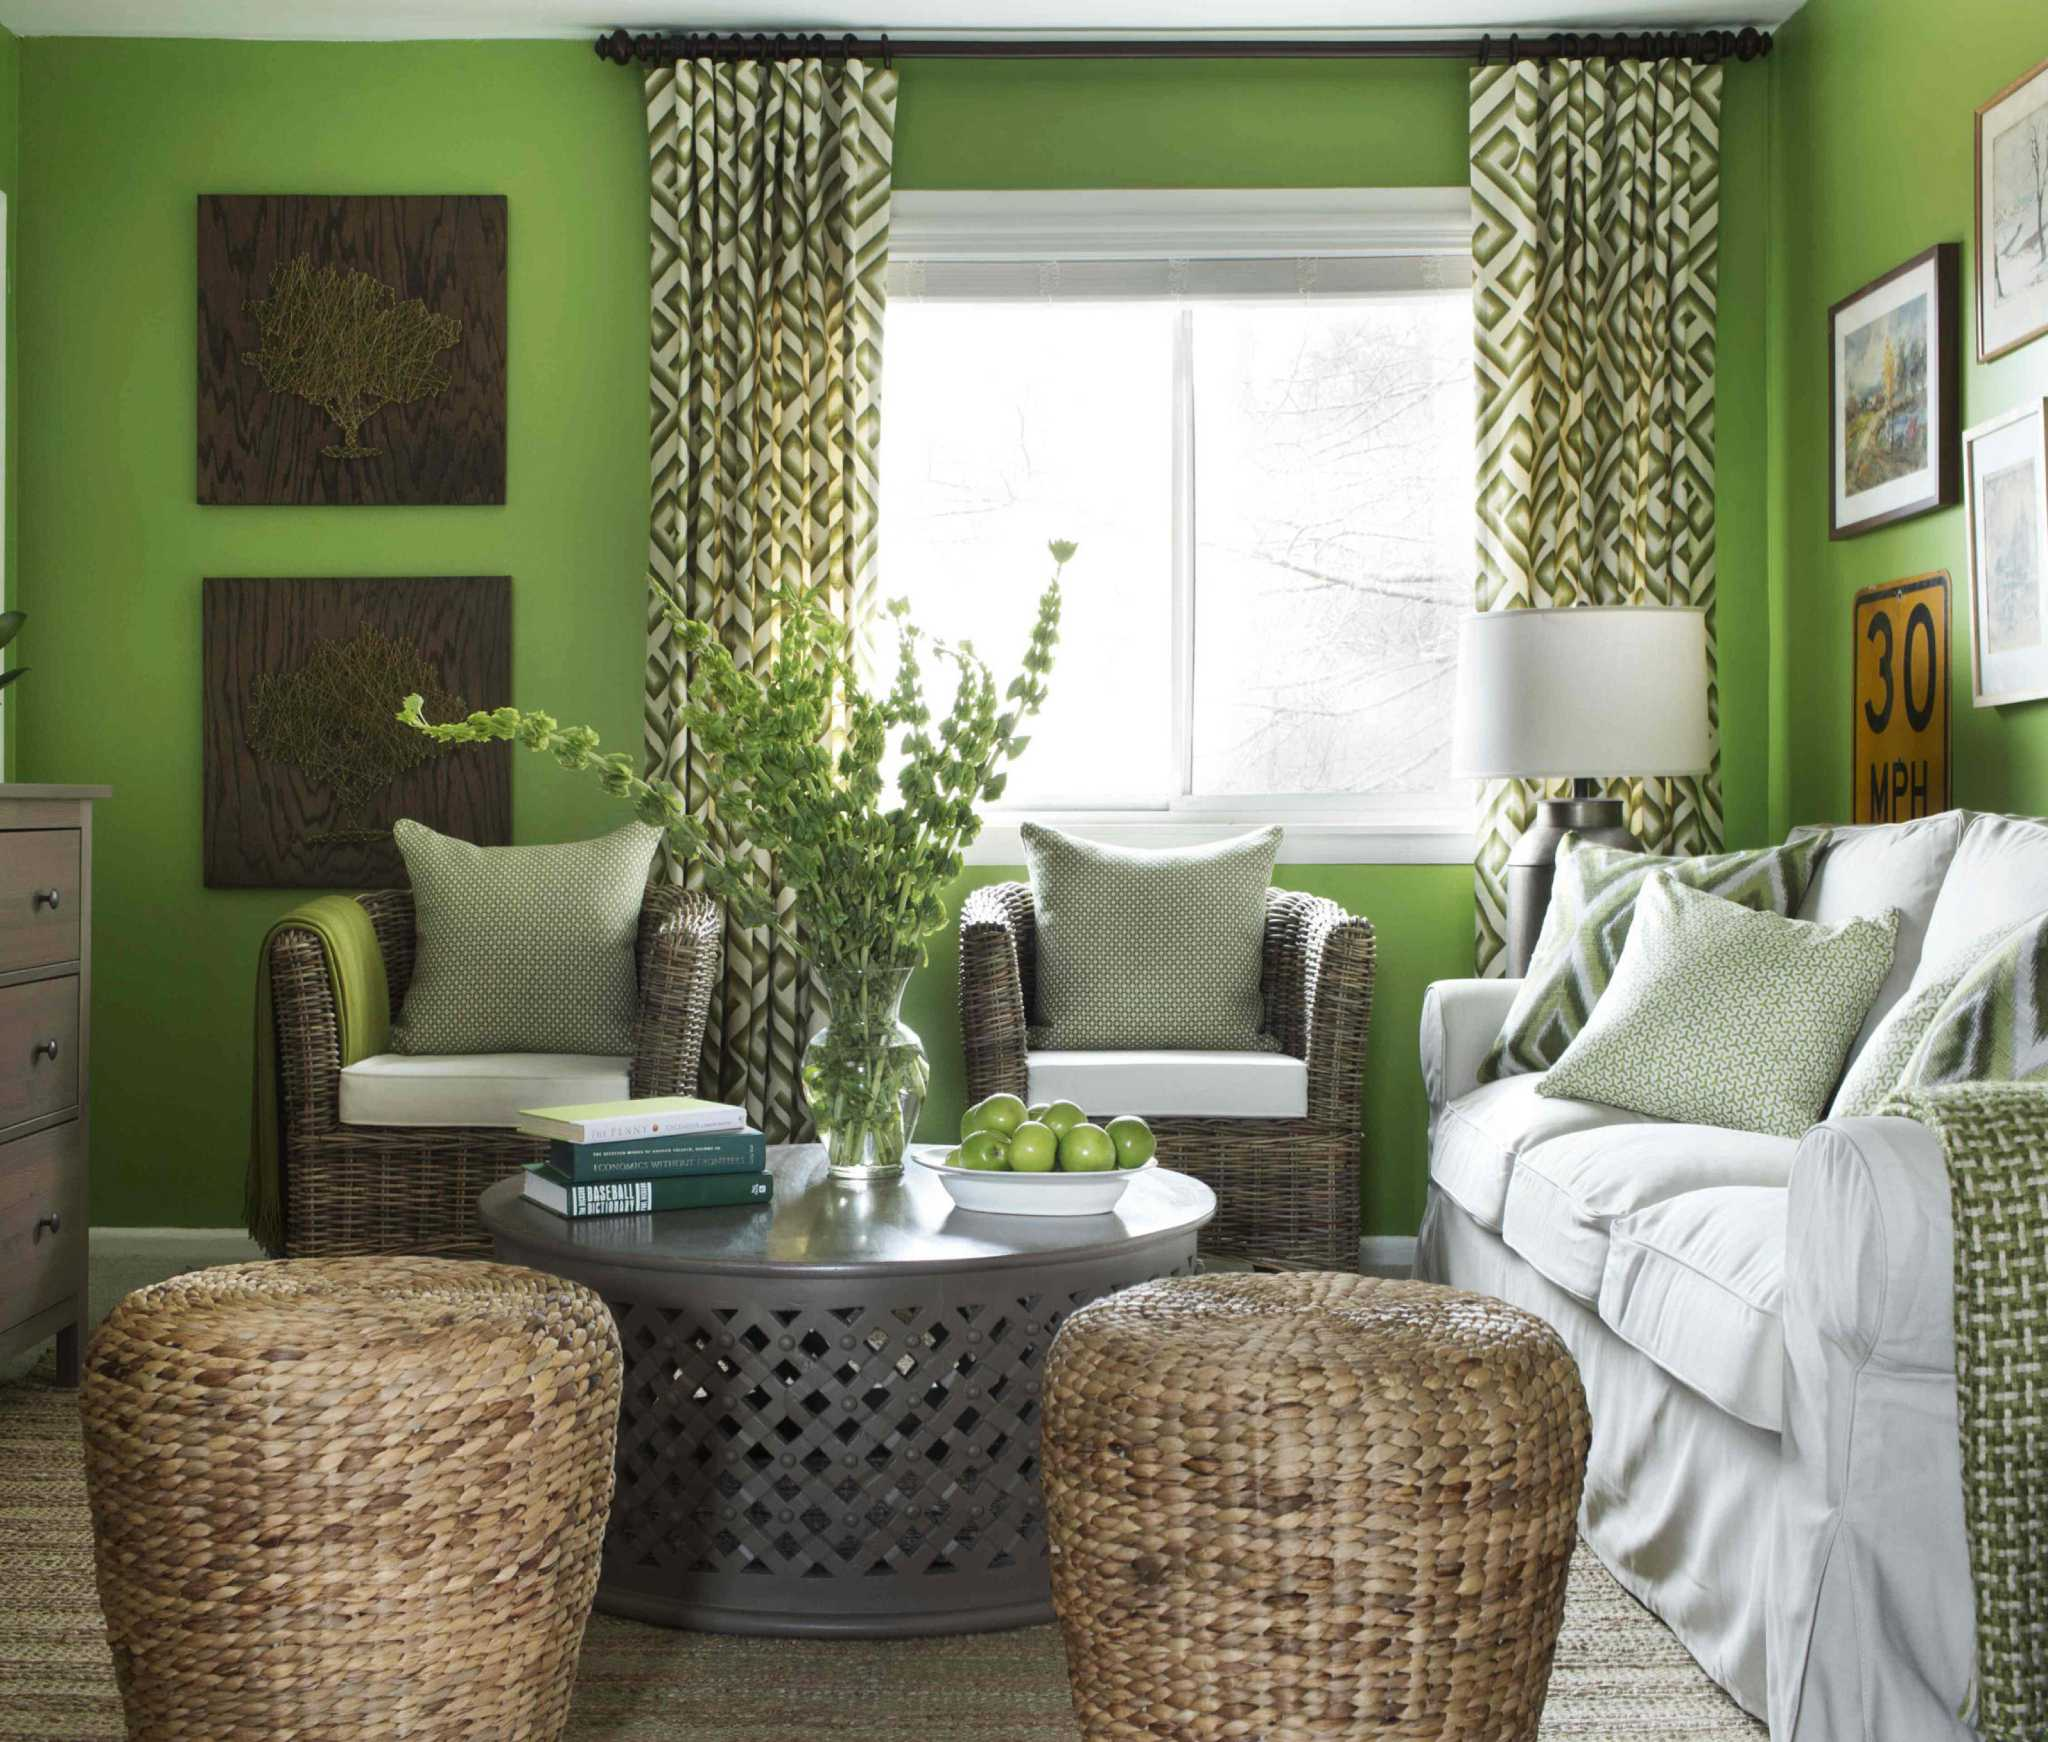 Bright Wall Colors Fabulous, With Balance And Moderation